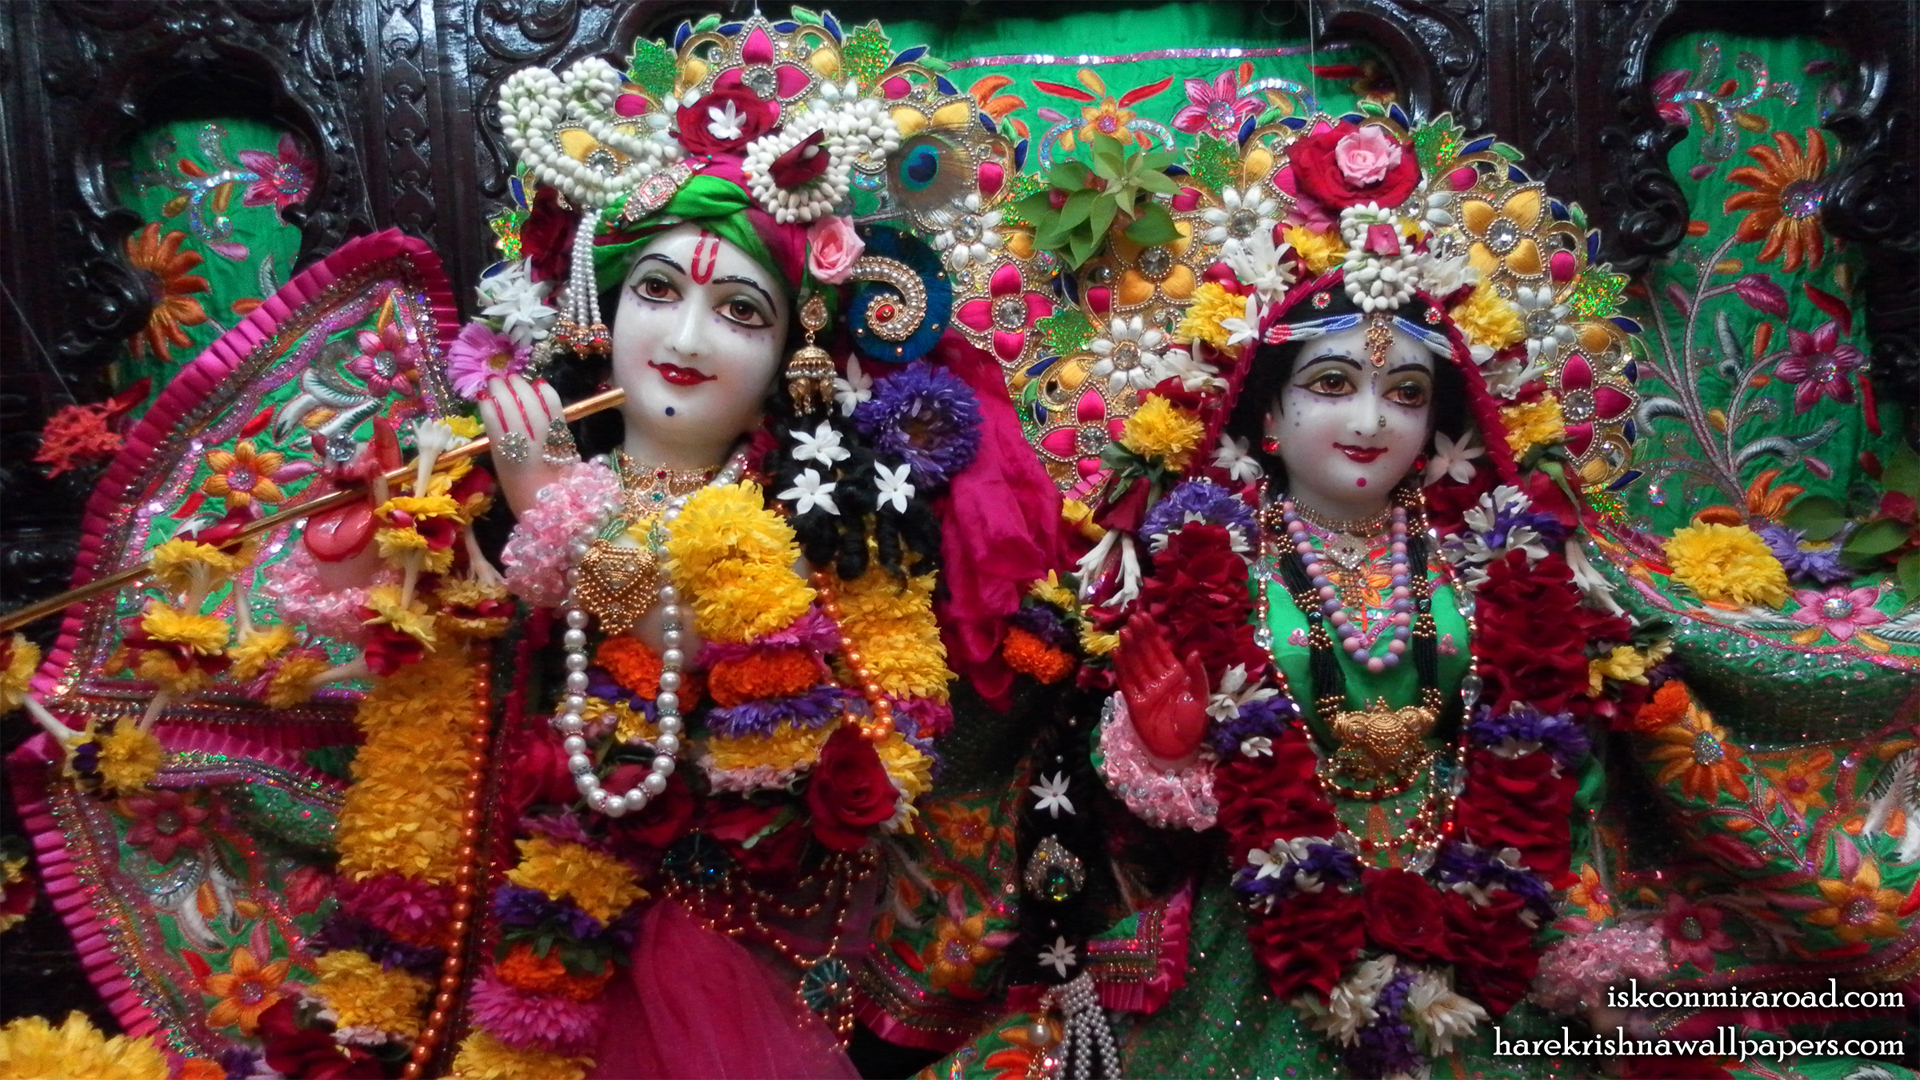 Sri Sri Radha Giridhari Close up Wallpaper (023) Size 1920x1080 Download